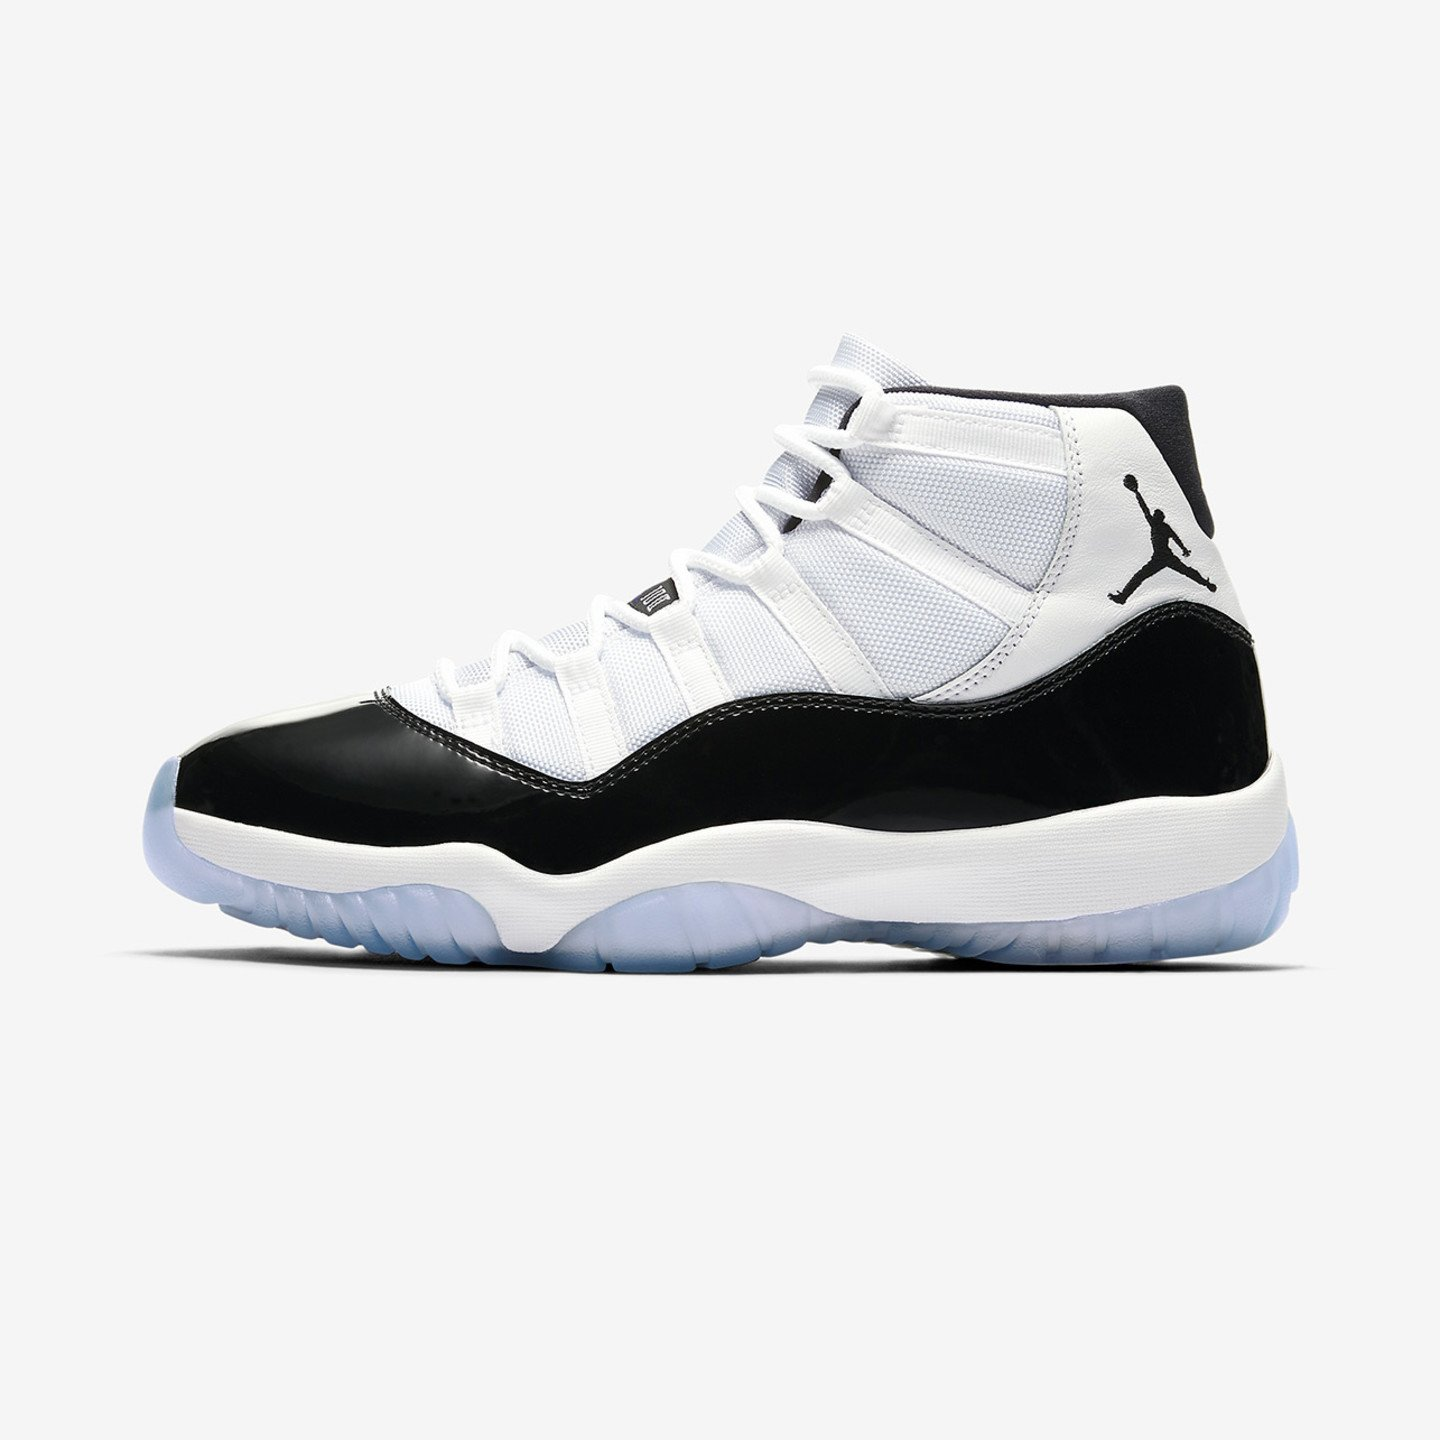 Jordan Air Jordan 11 Retro 'Concord' White / Black / Dark Concord 378037-100